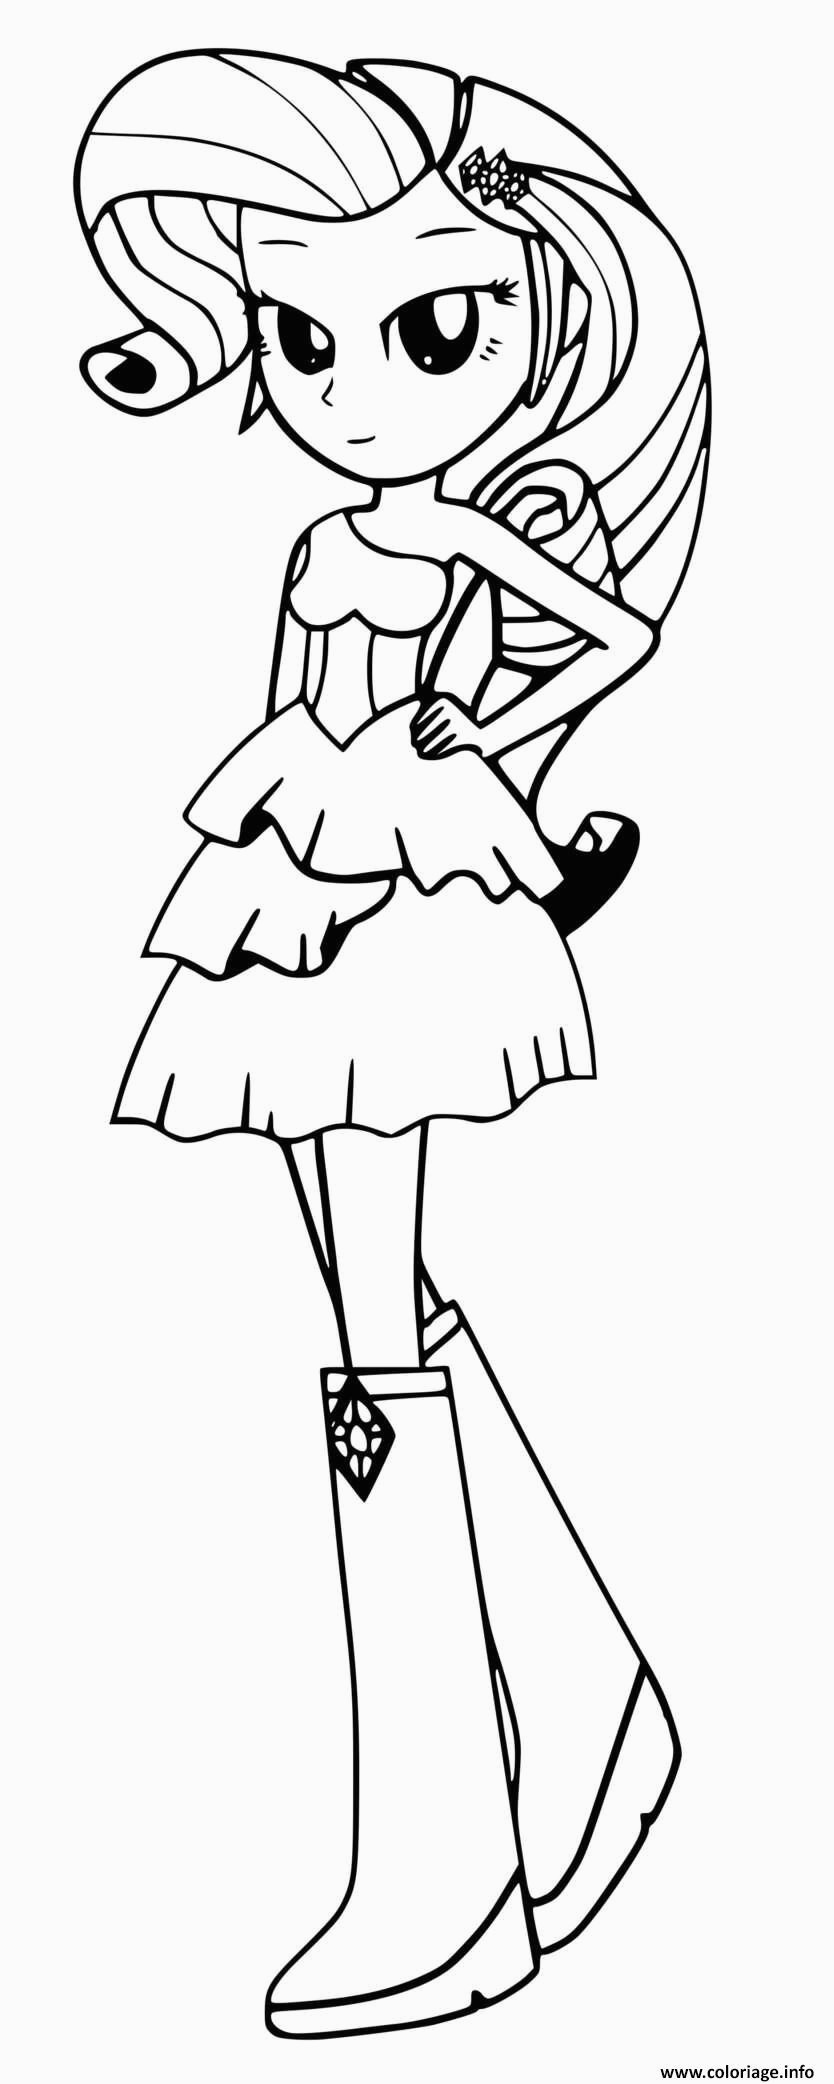 Coloriage My Little Pony Equestria Girl Rarity Coloriage My Little Pony Equestria Girls Rarity